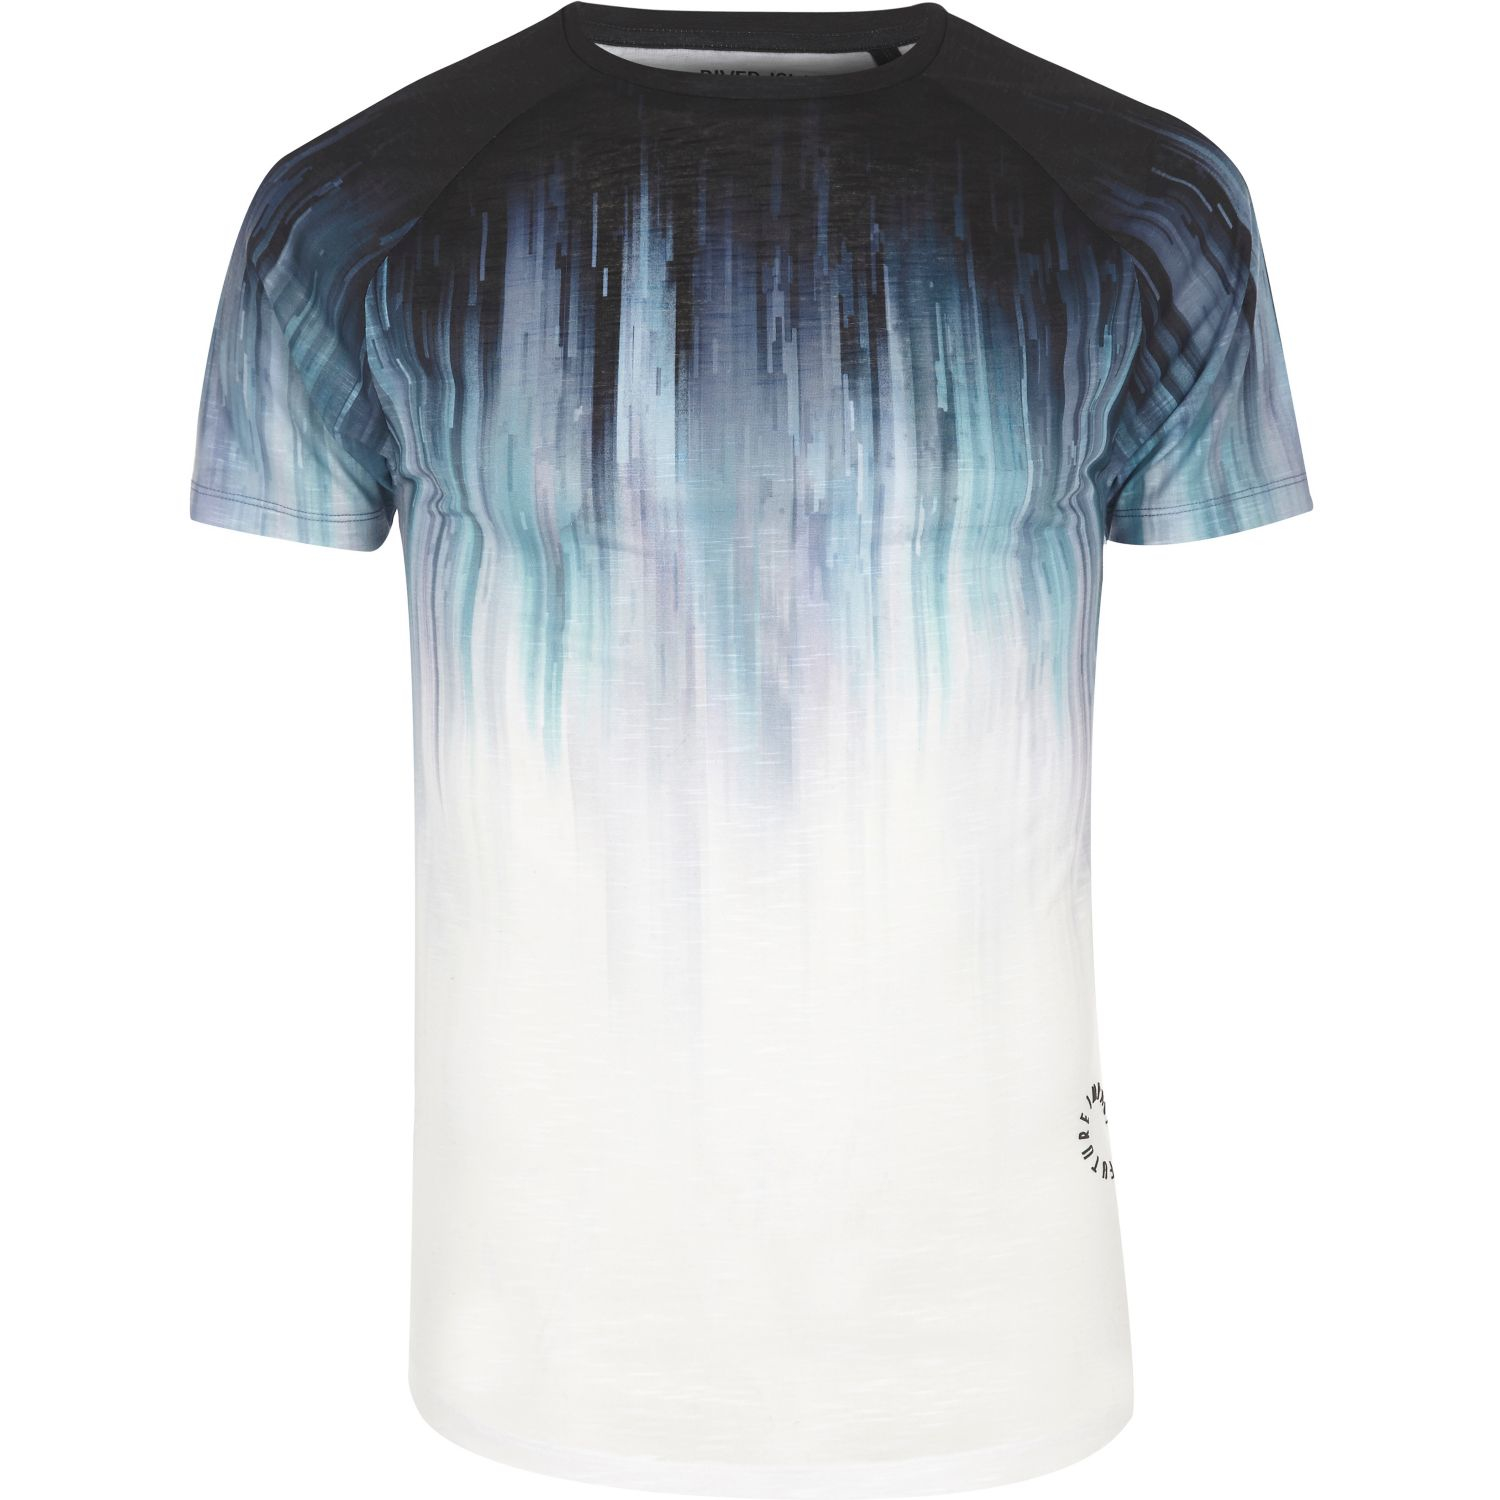 River island white faded print muscle fit t shirt in blue for Faded color t shirts